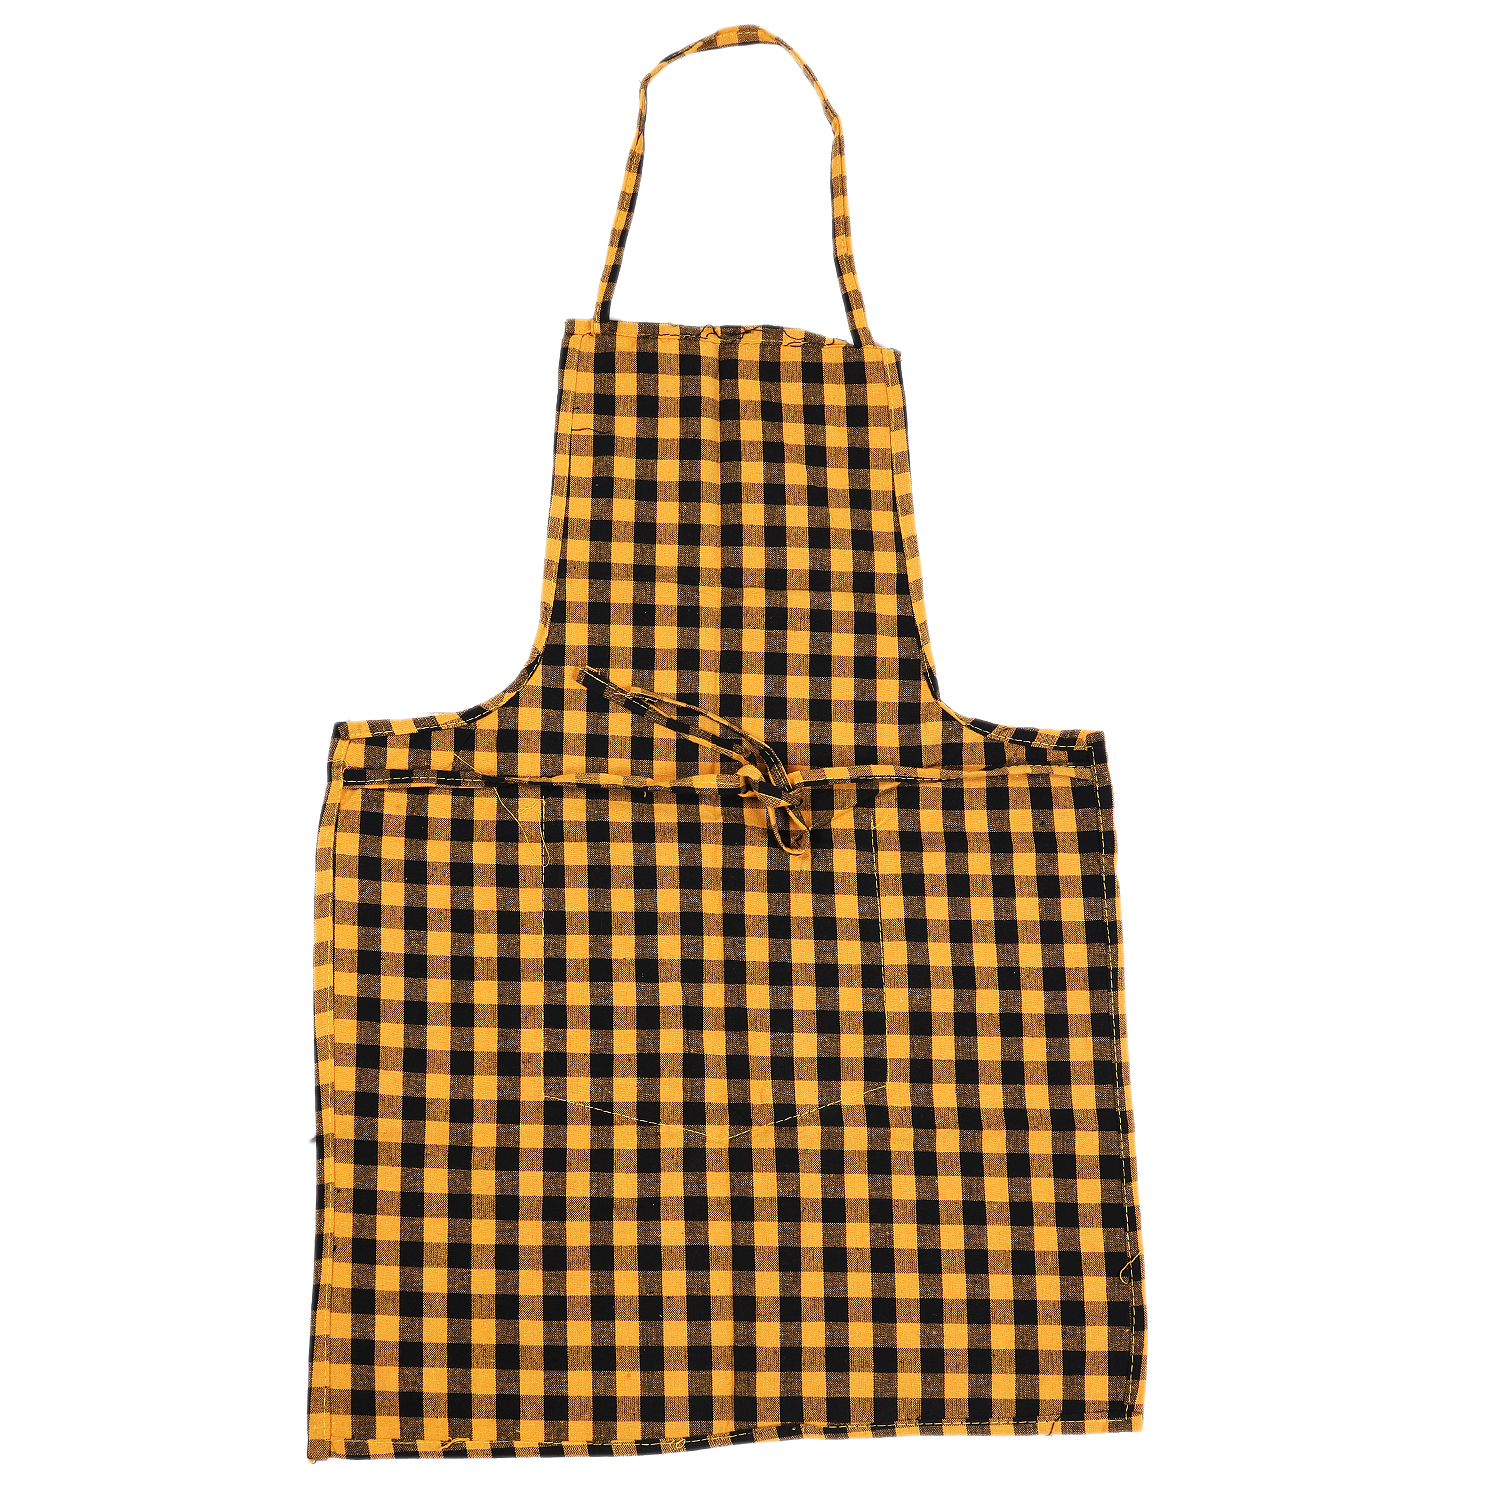 Kuber Industries Checkered Design 4 Pieces Kitchen Apron with Front Pocket (Blue, Black, Maroon & Yellow)-CTKTC32640